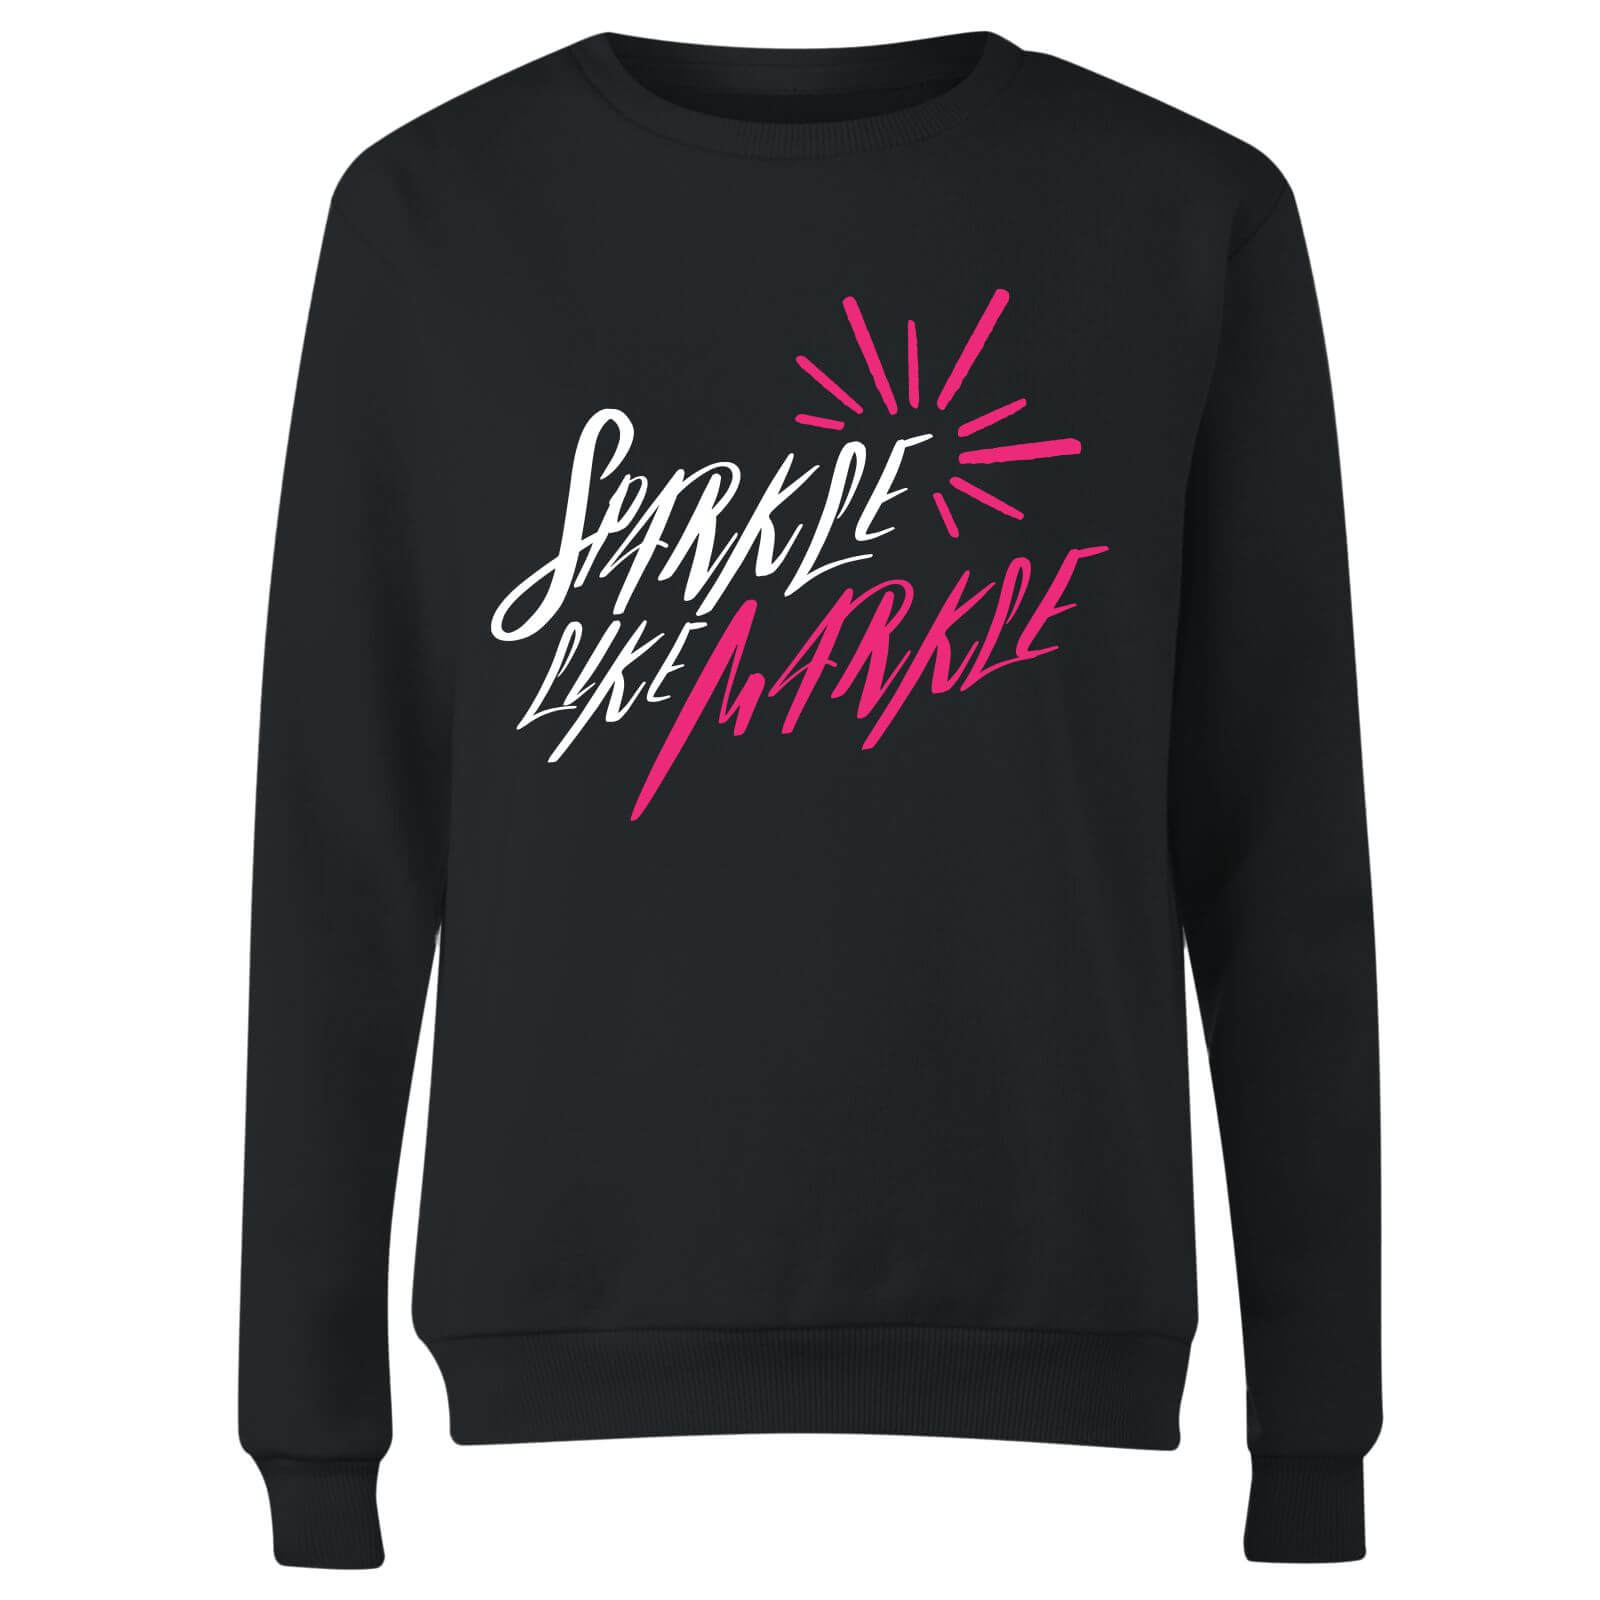 Sparkle Like Markle Women